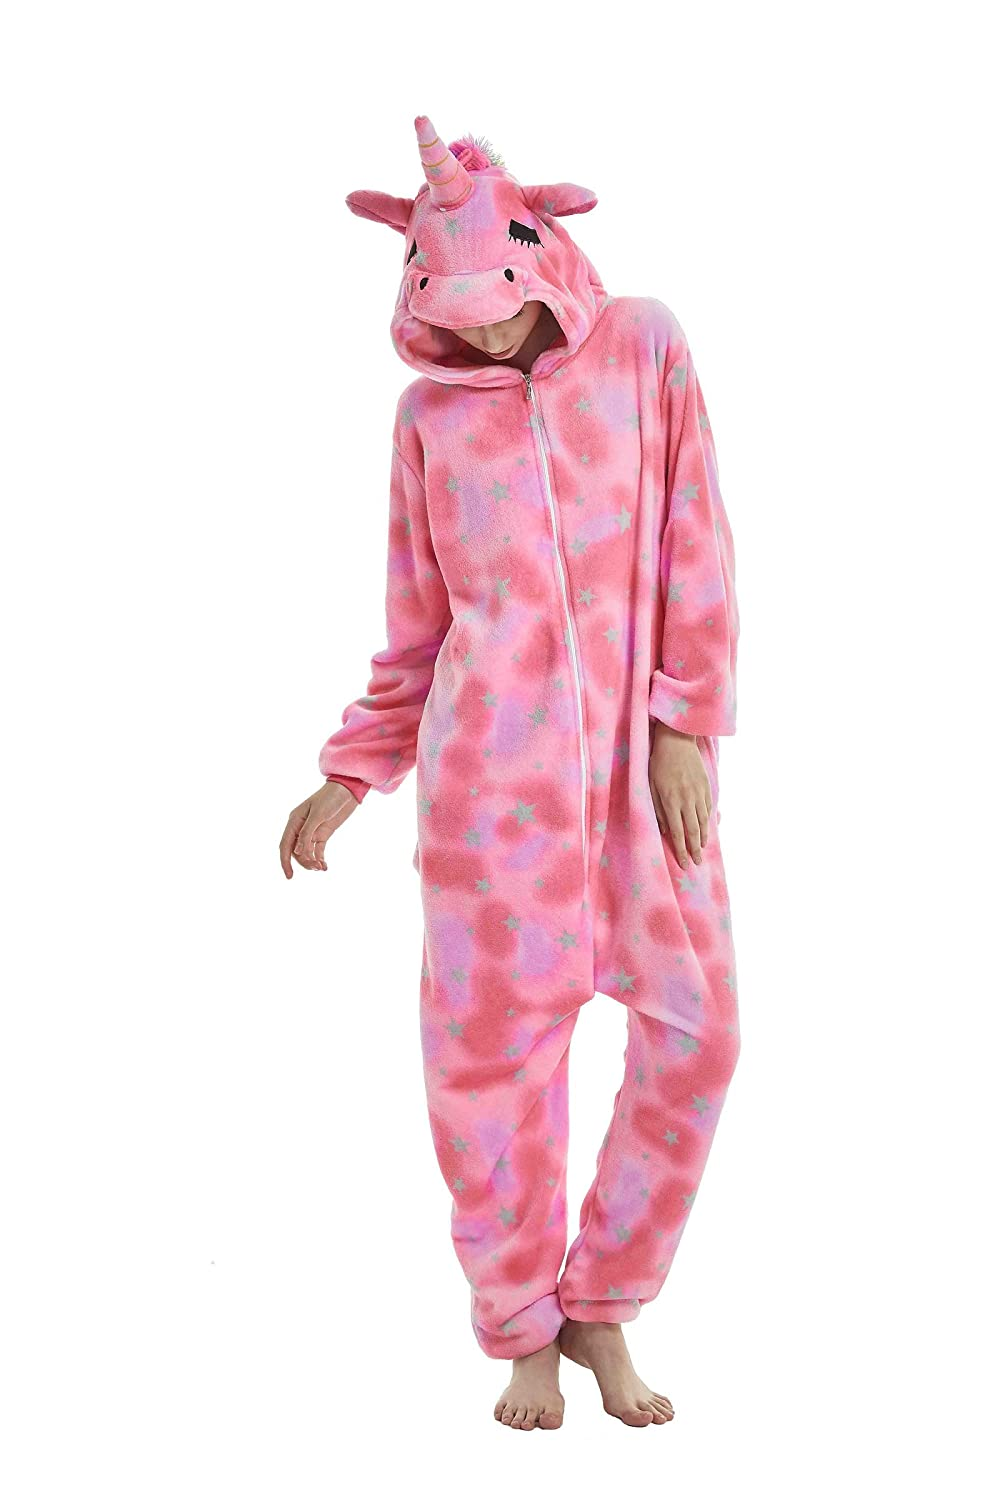 Tuopuda Unicorn One Piece Pyjamas Unisex Adult Onesie Animal Pajamas Homewear Sleepwear Nightclothes Christmas Halloween Party Cosplay Costume